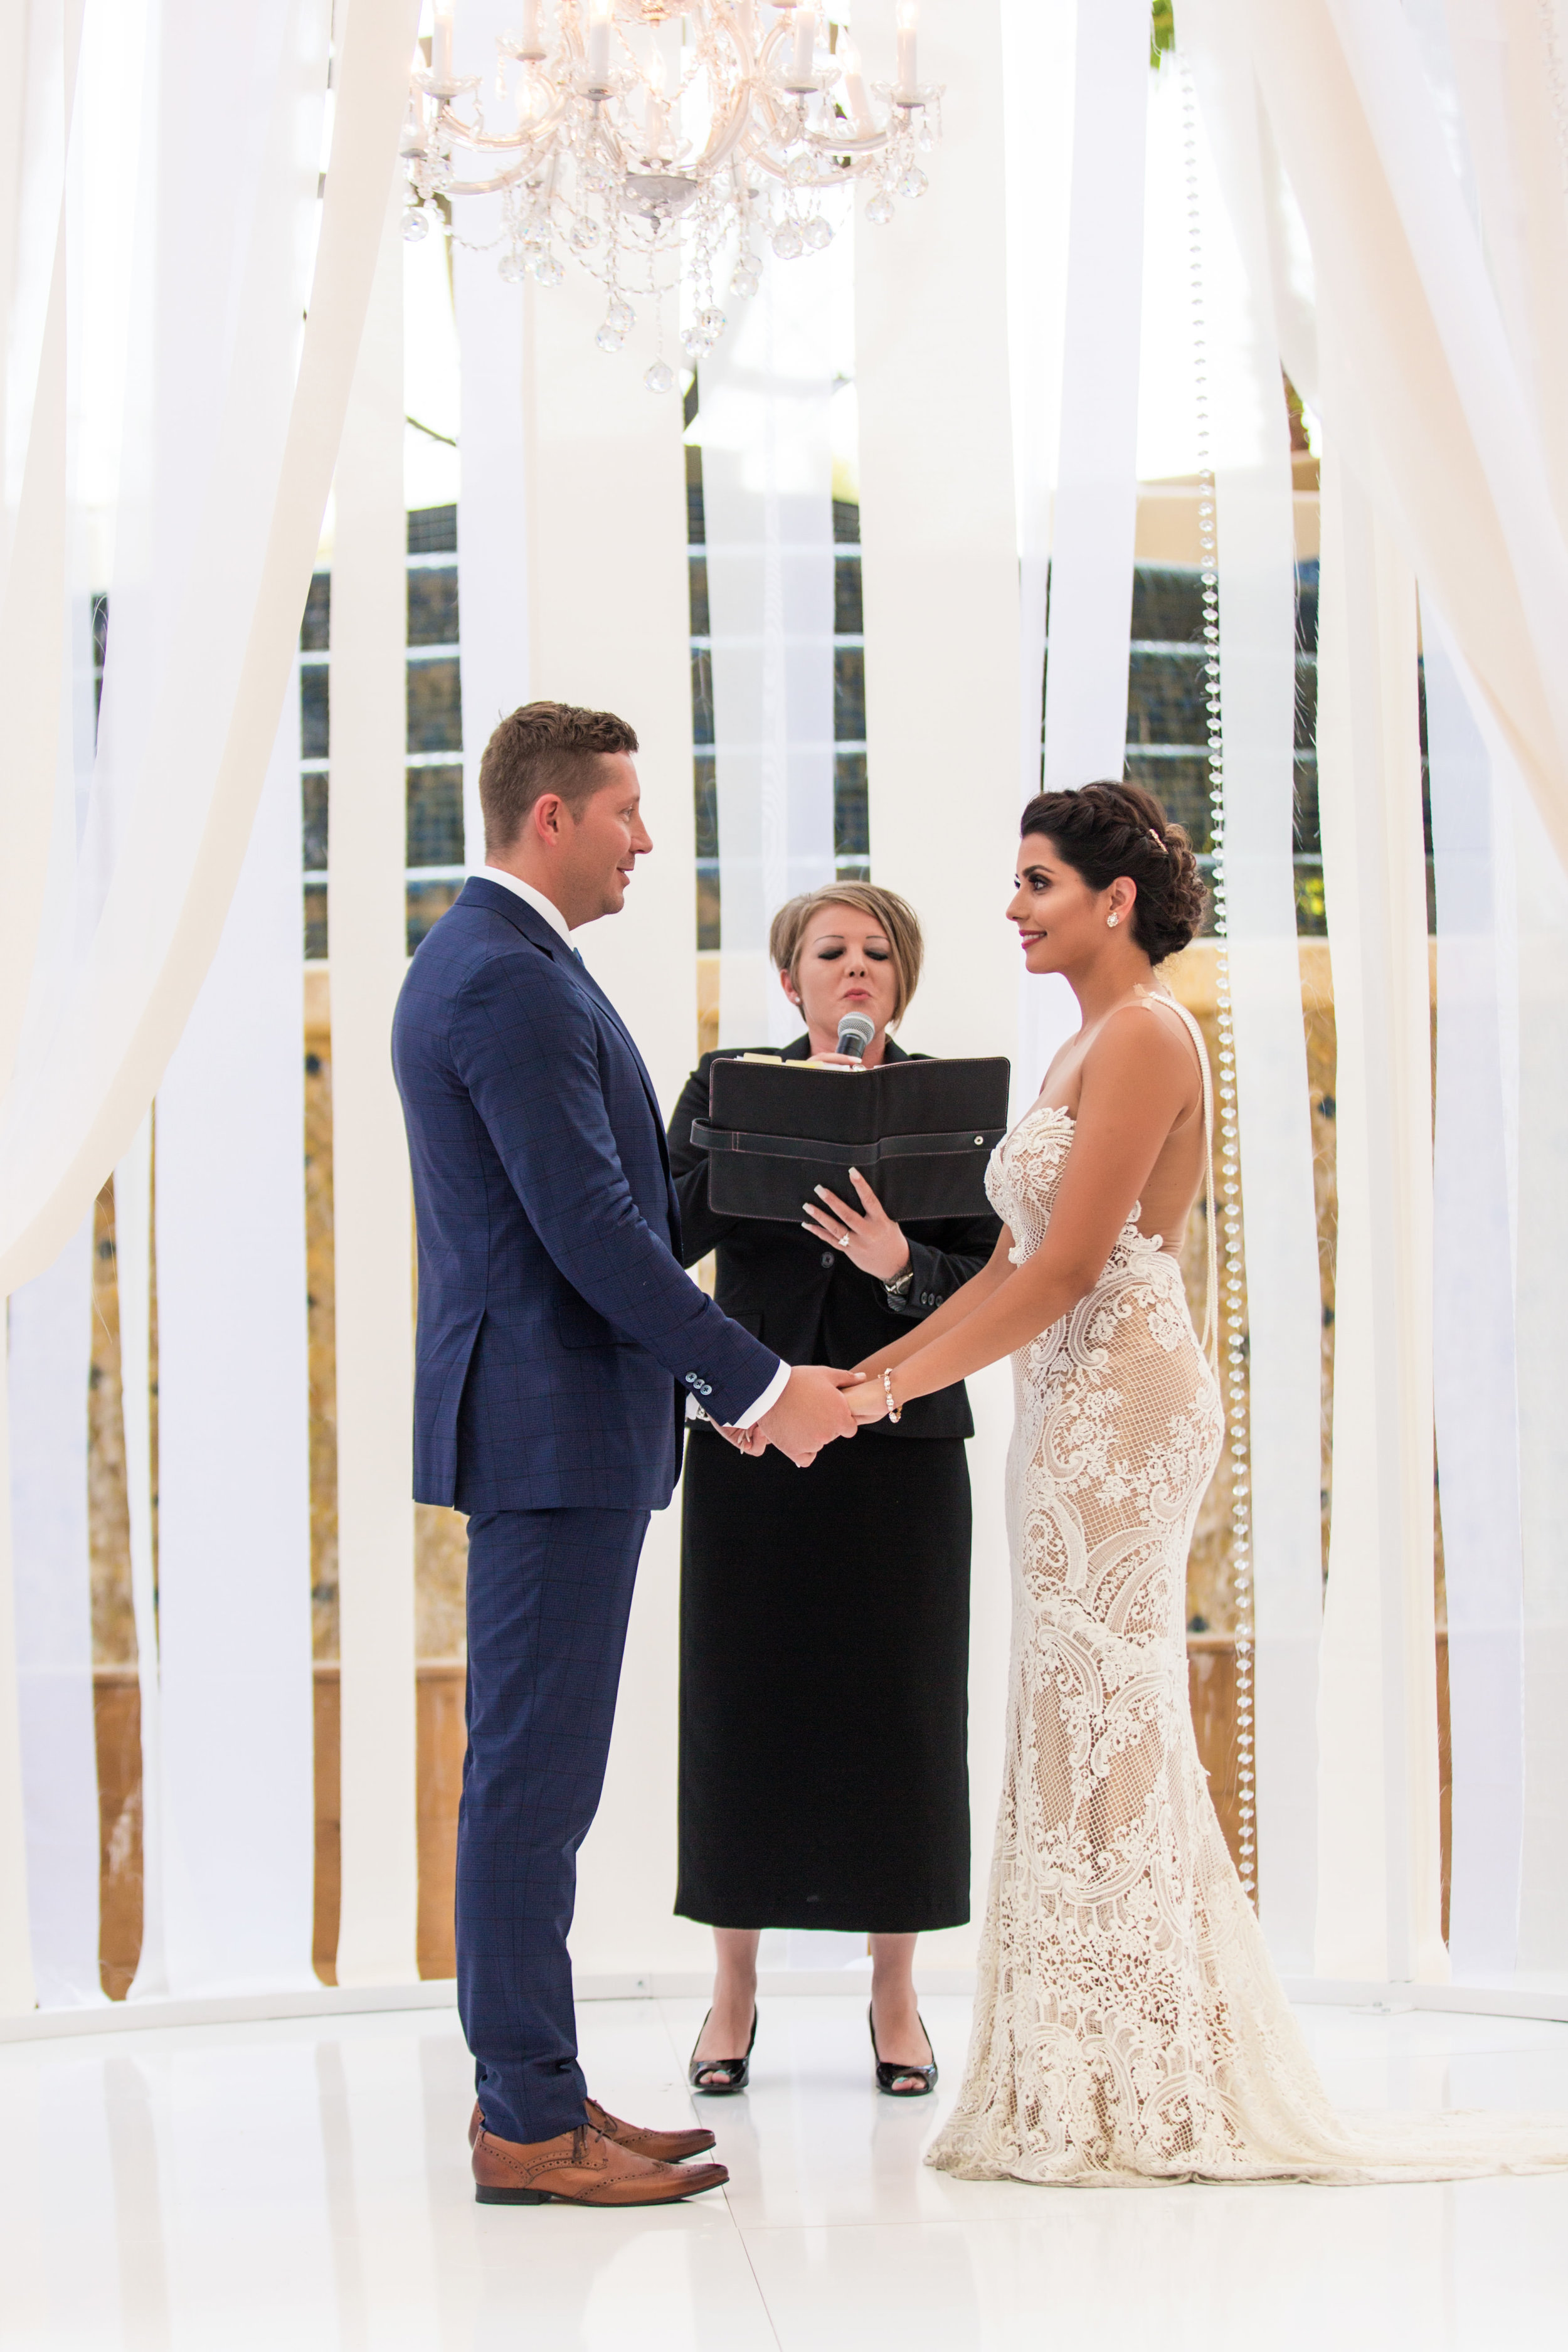 Wedding ceremony in birdcage.Wedding Planning by  Andrea Eppolito Events  · Photography by  Shandro Photo   · Wedding Venue  Four Seasons Las Vegas  · Floral and Decor by  Destination by Design  · Cake by  Four Seasons Las Vegas  · Chandeliers and Lighting by  LED Unplugged  · Dress by  Berta